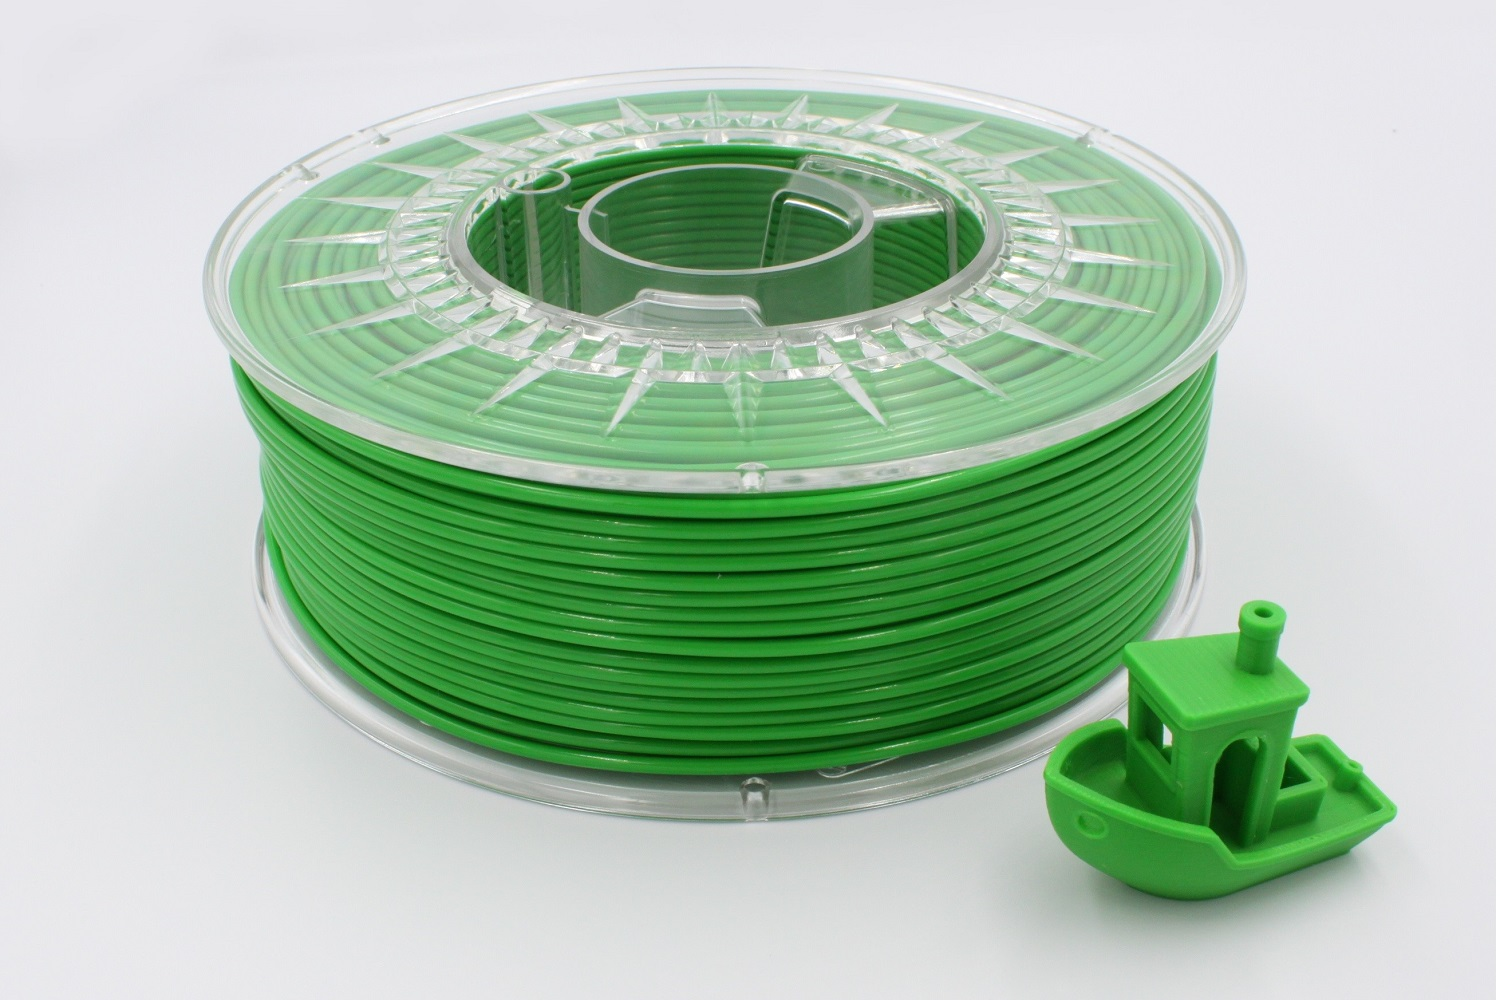 More info on Green Grass Filament